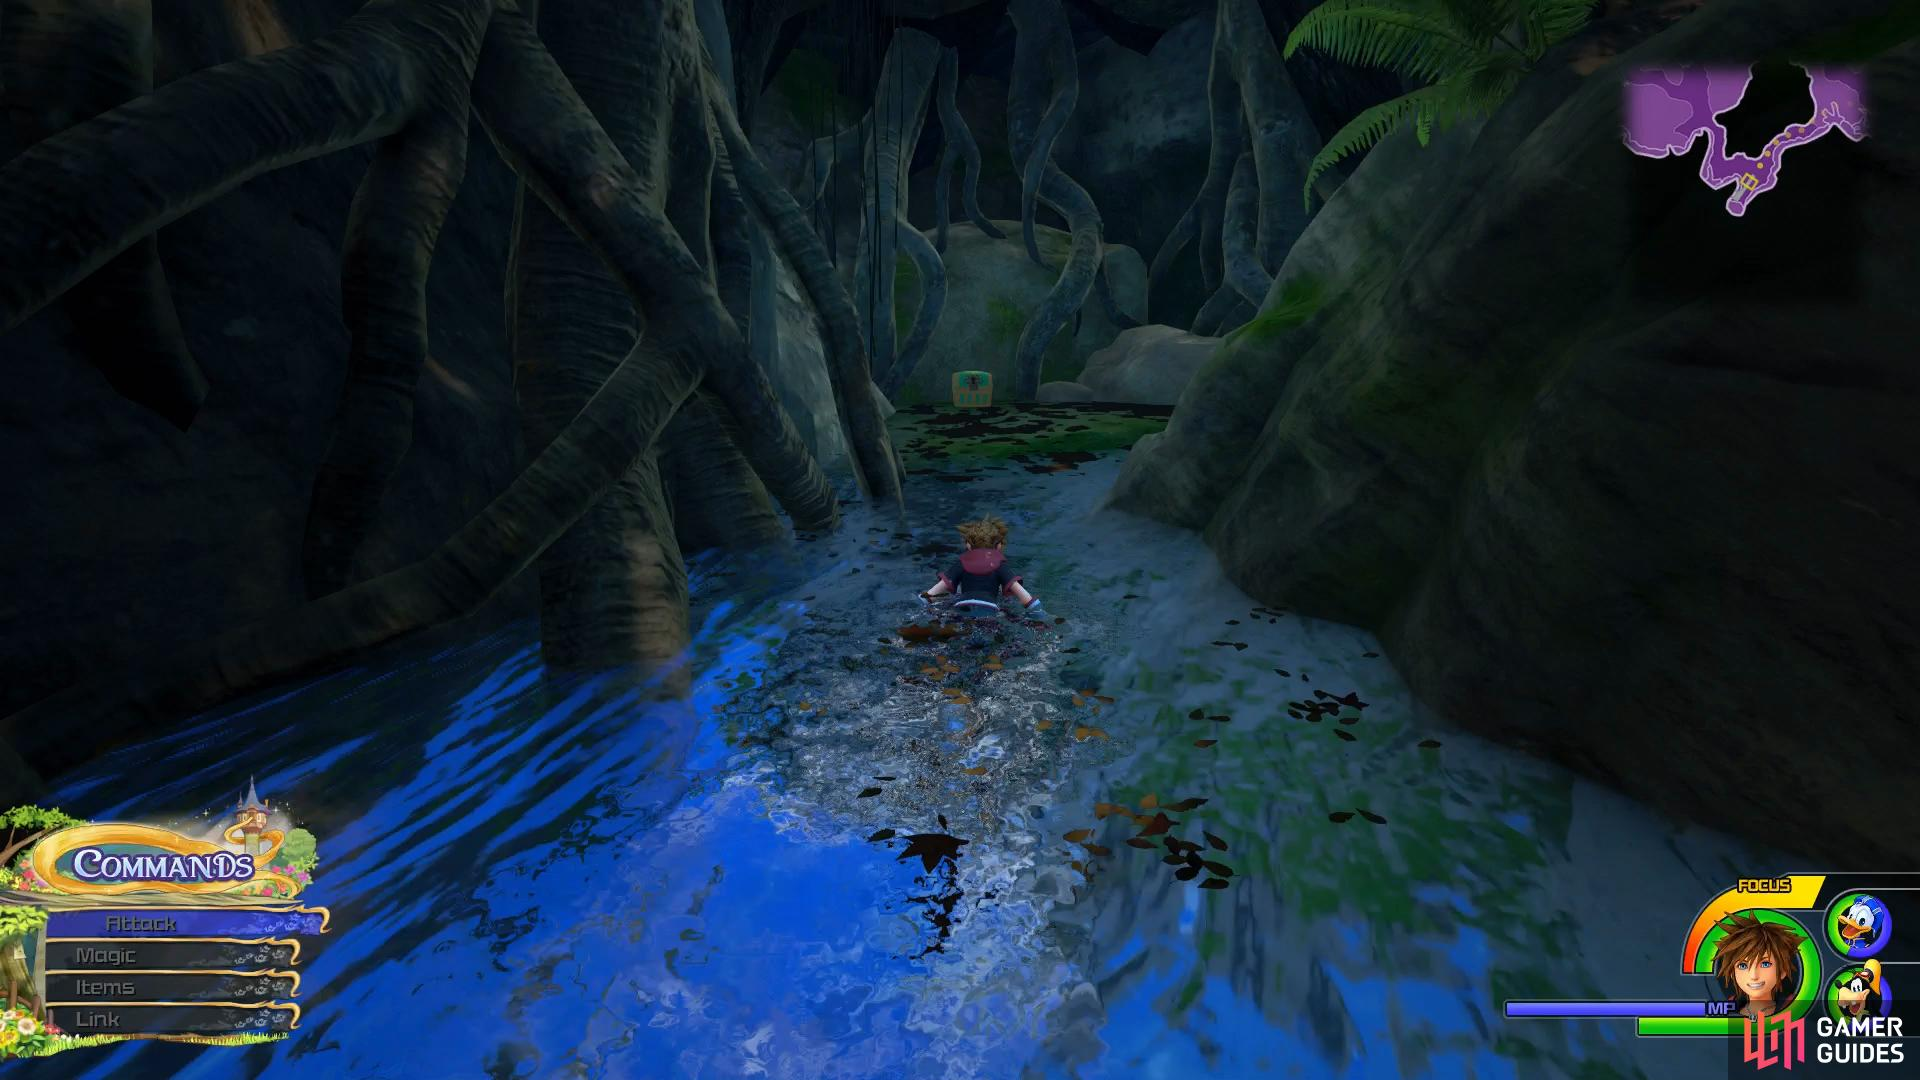 take the western path through the water to discover this chest.